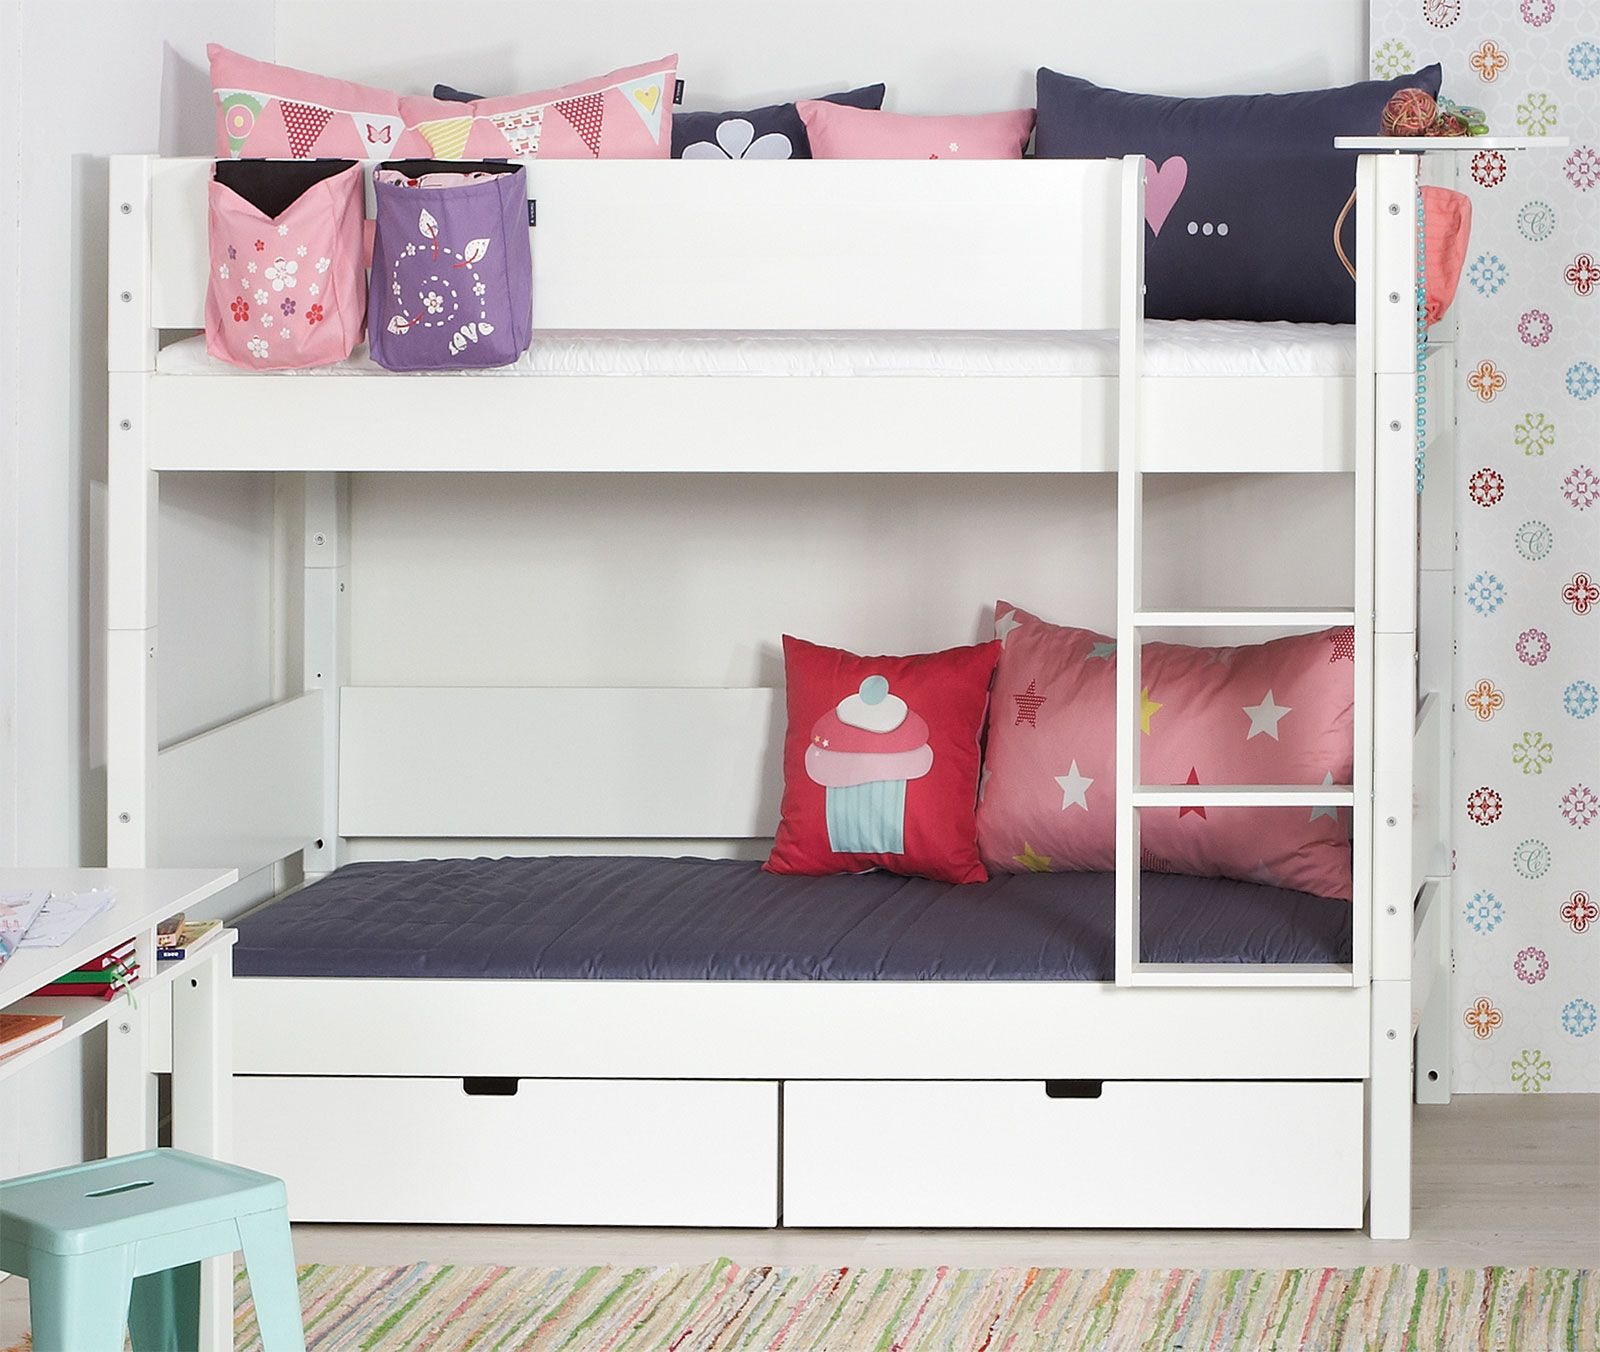 etagenbett kids town moderne etagenbetten etagenbett und hochbetten kinderzimmer. Black Bedroom Furniture Sets. Home Design Ideas